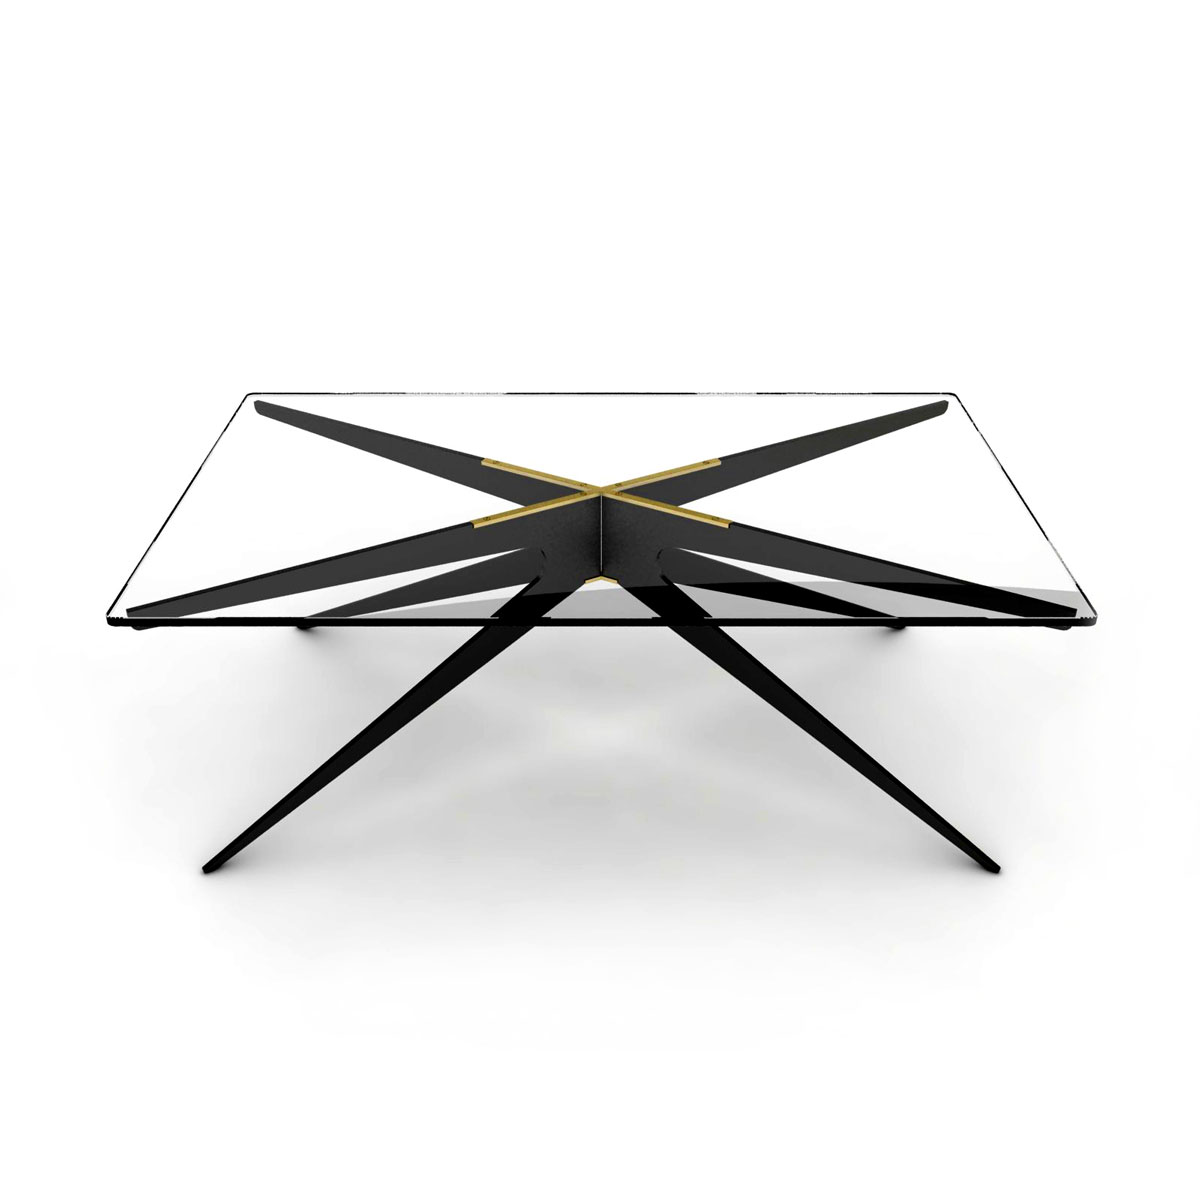 Dean rectnagular coffee table   black  clear